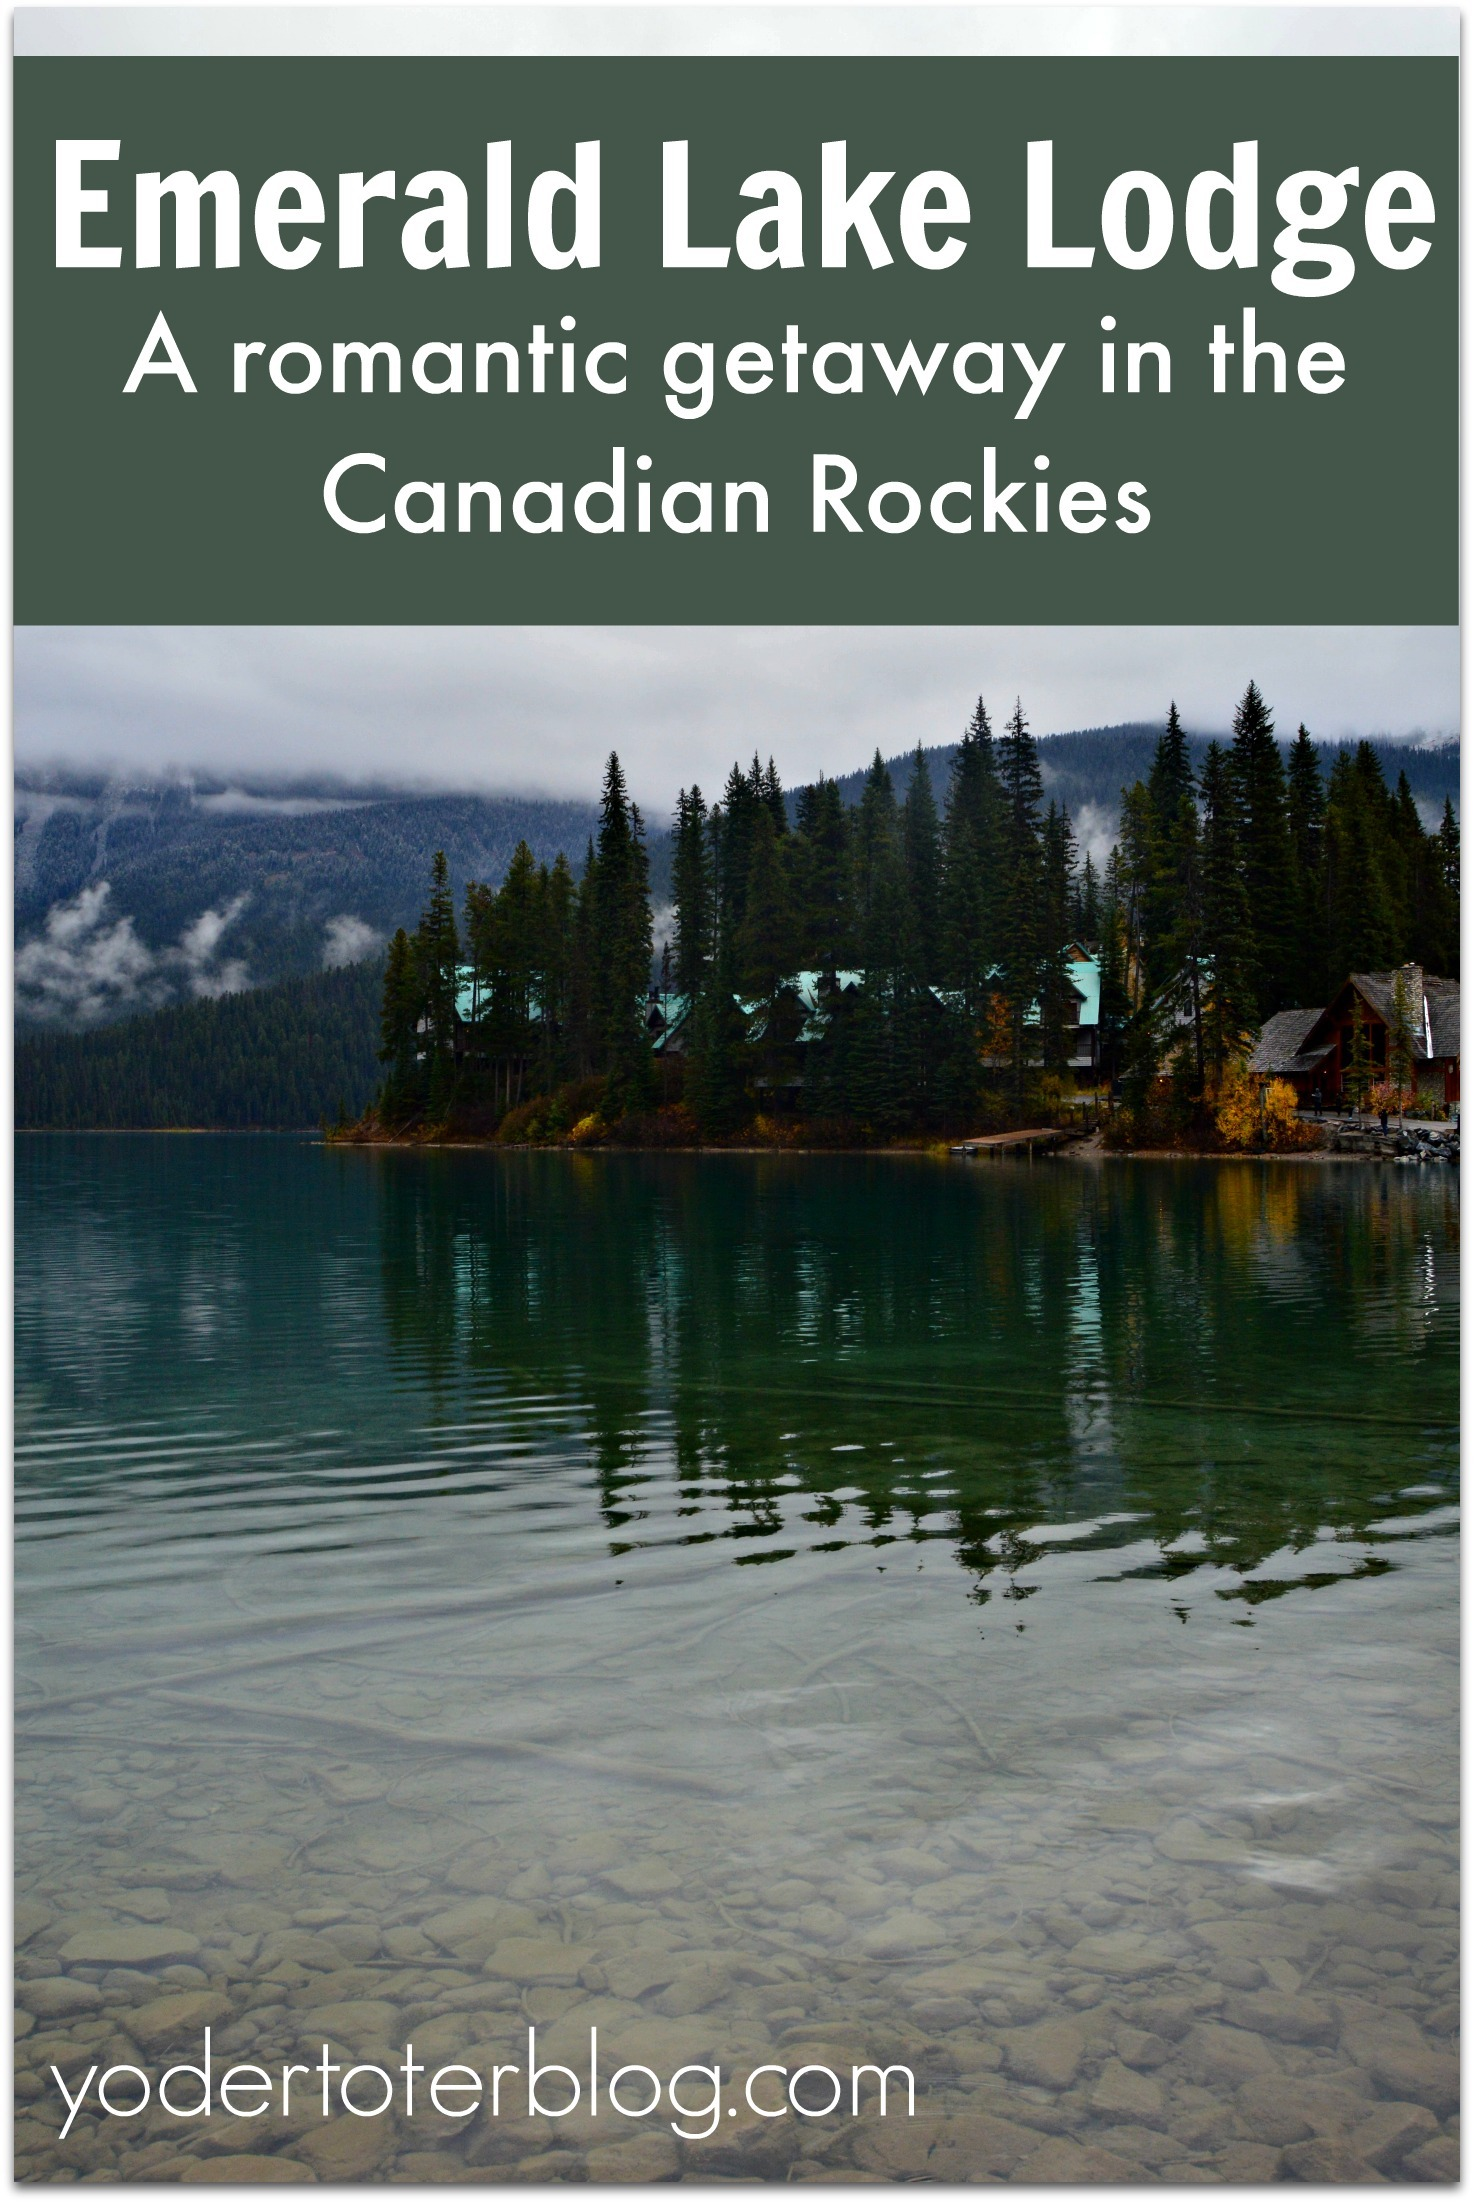 Emerald Lake Lodge- Romantic Getaway in the Canadian Rockies - hotel review